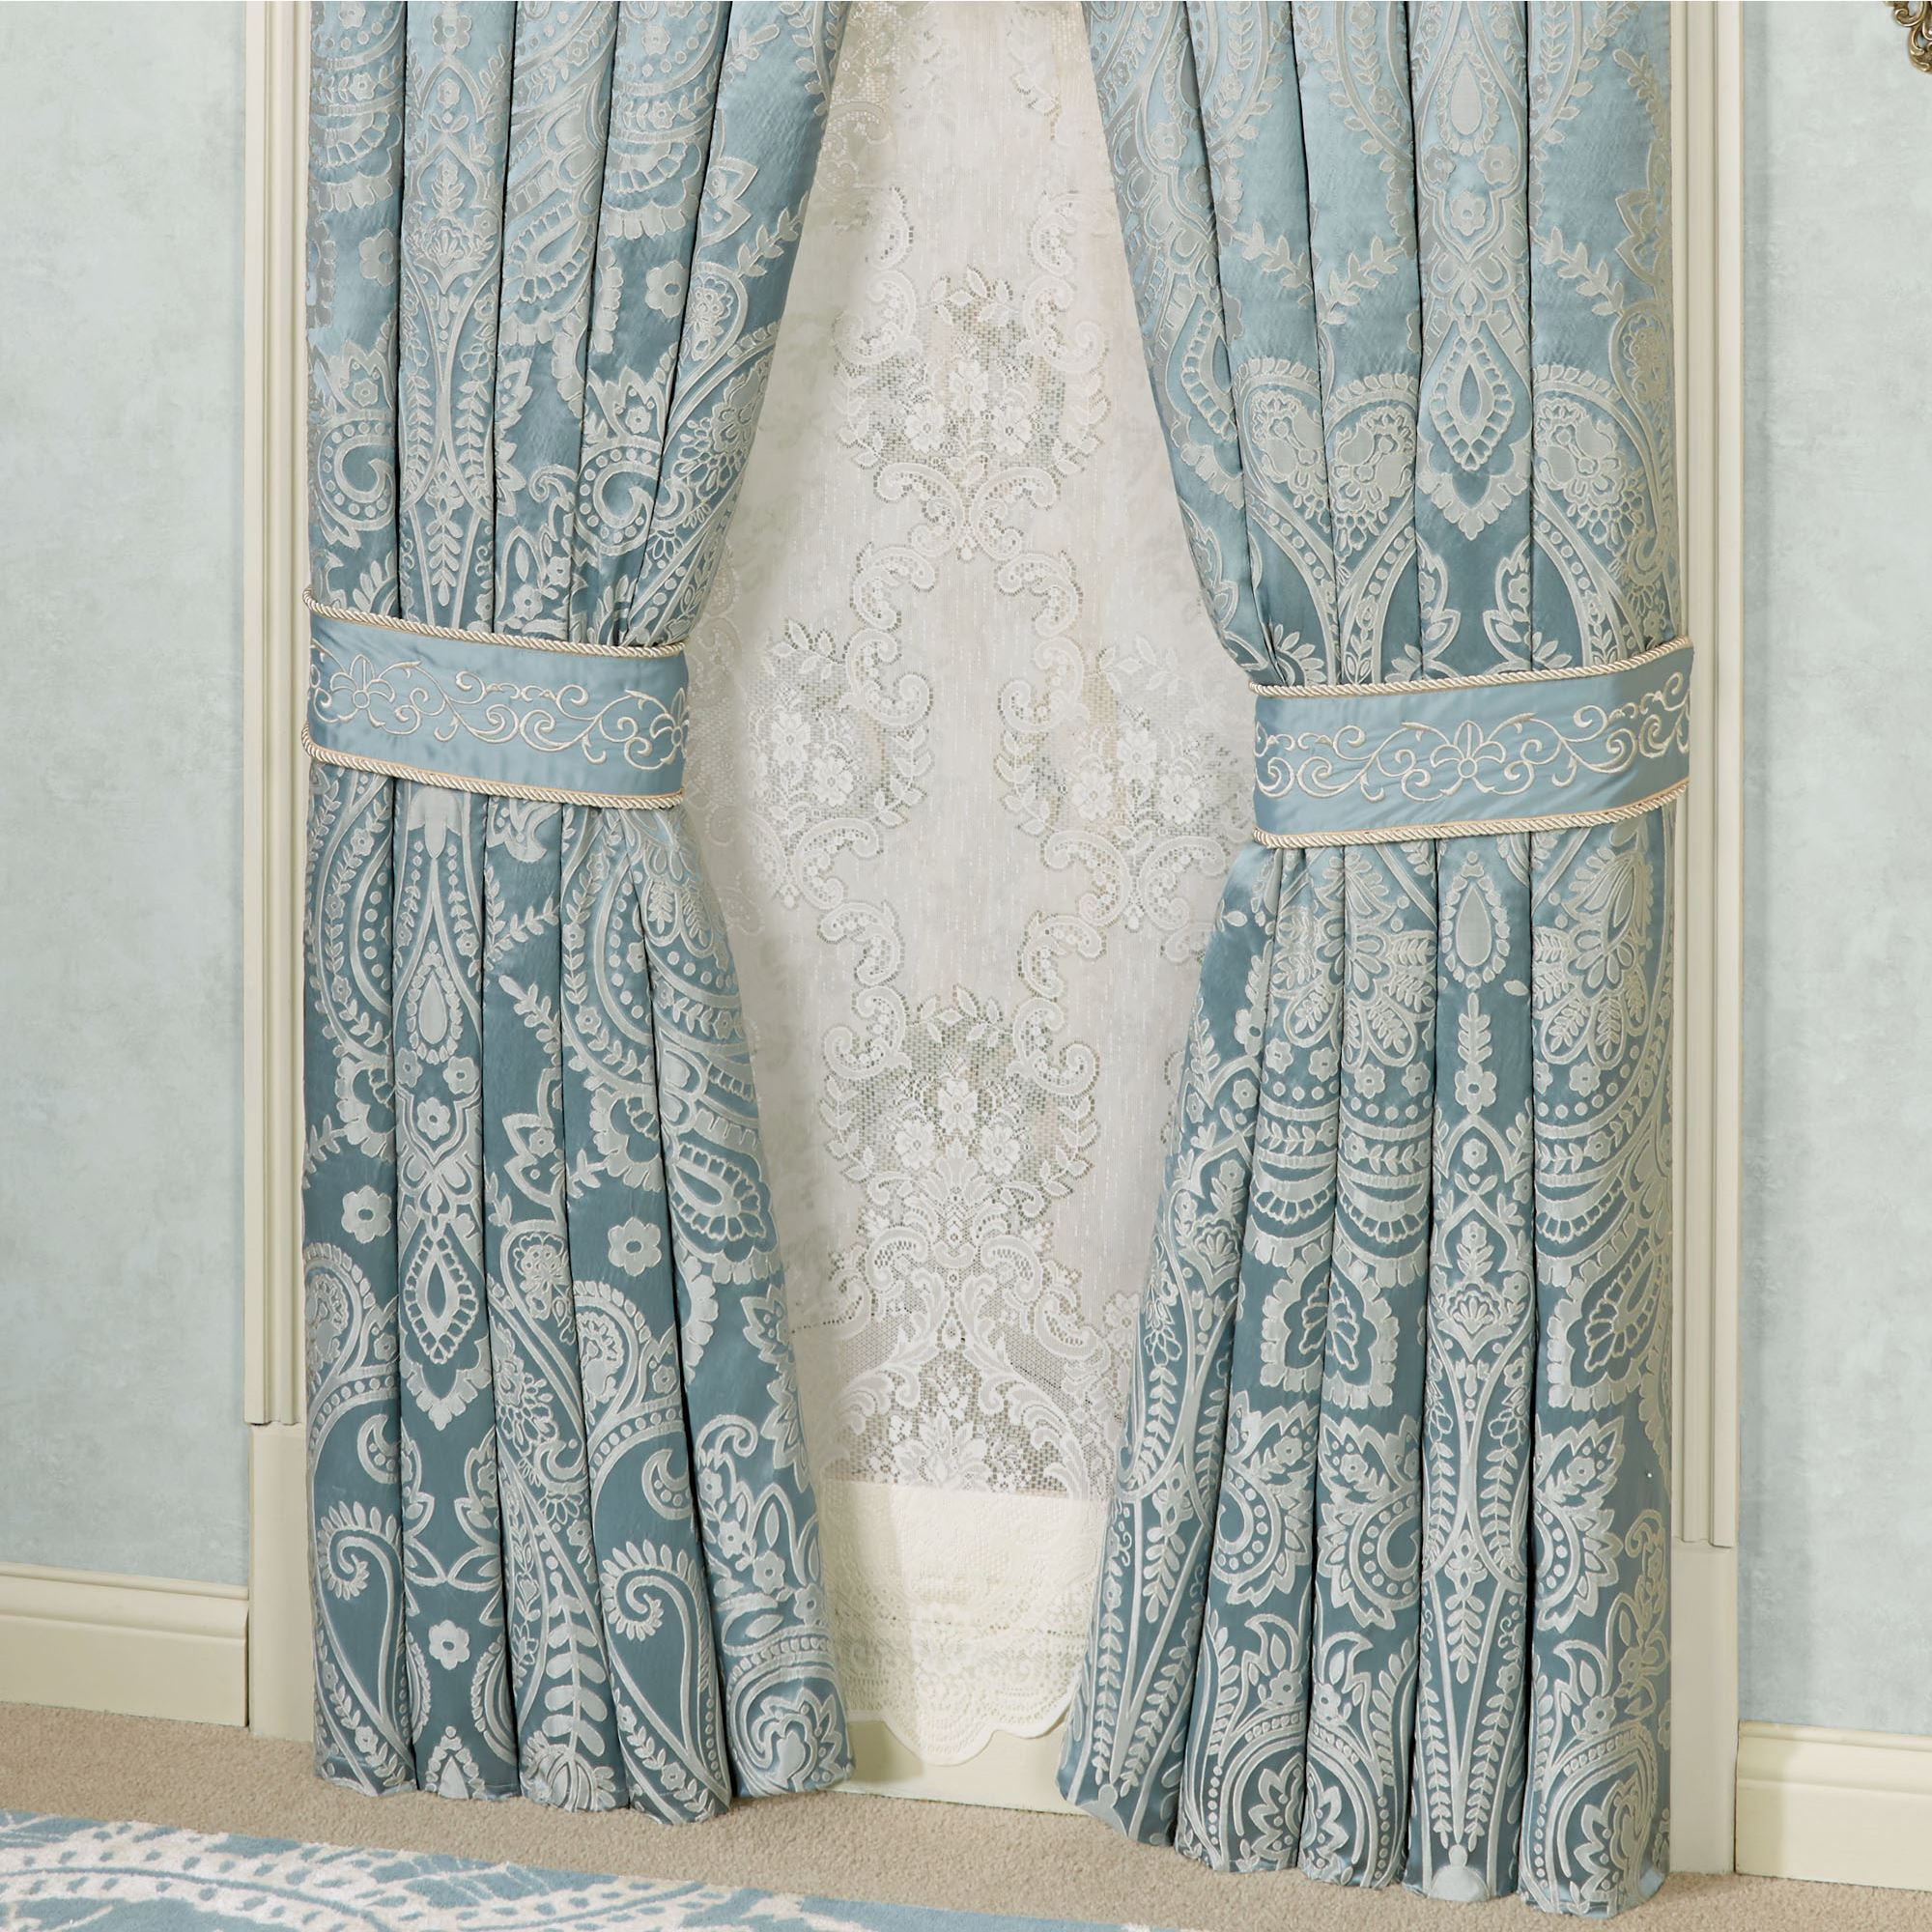 kitchen panel abri dp gray sheer amazon inches silver home curtain royal curtains com waterfall by grommet crushed hotel